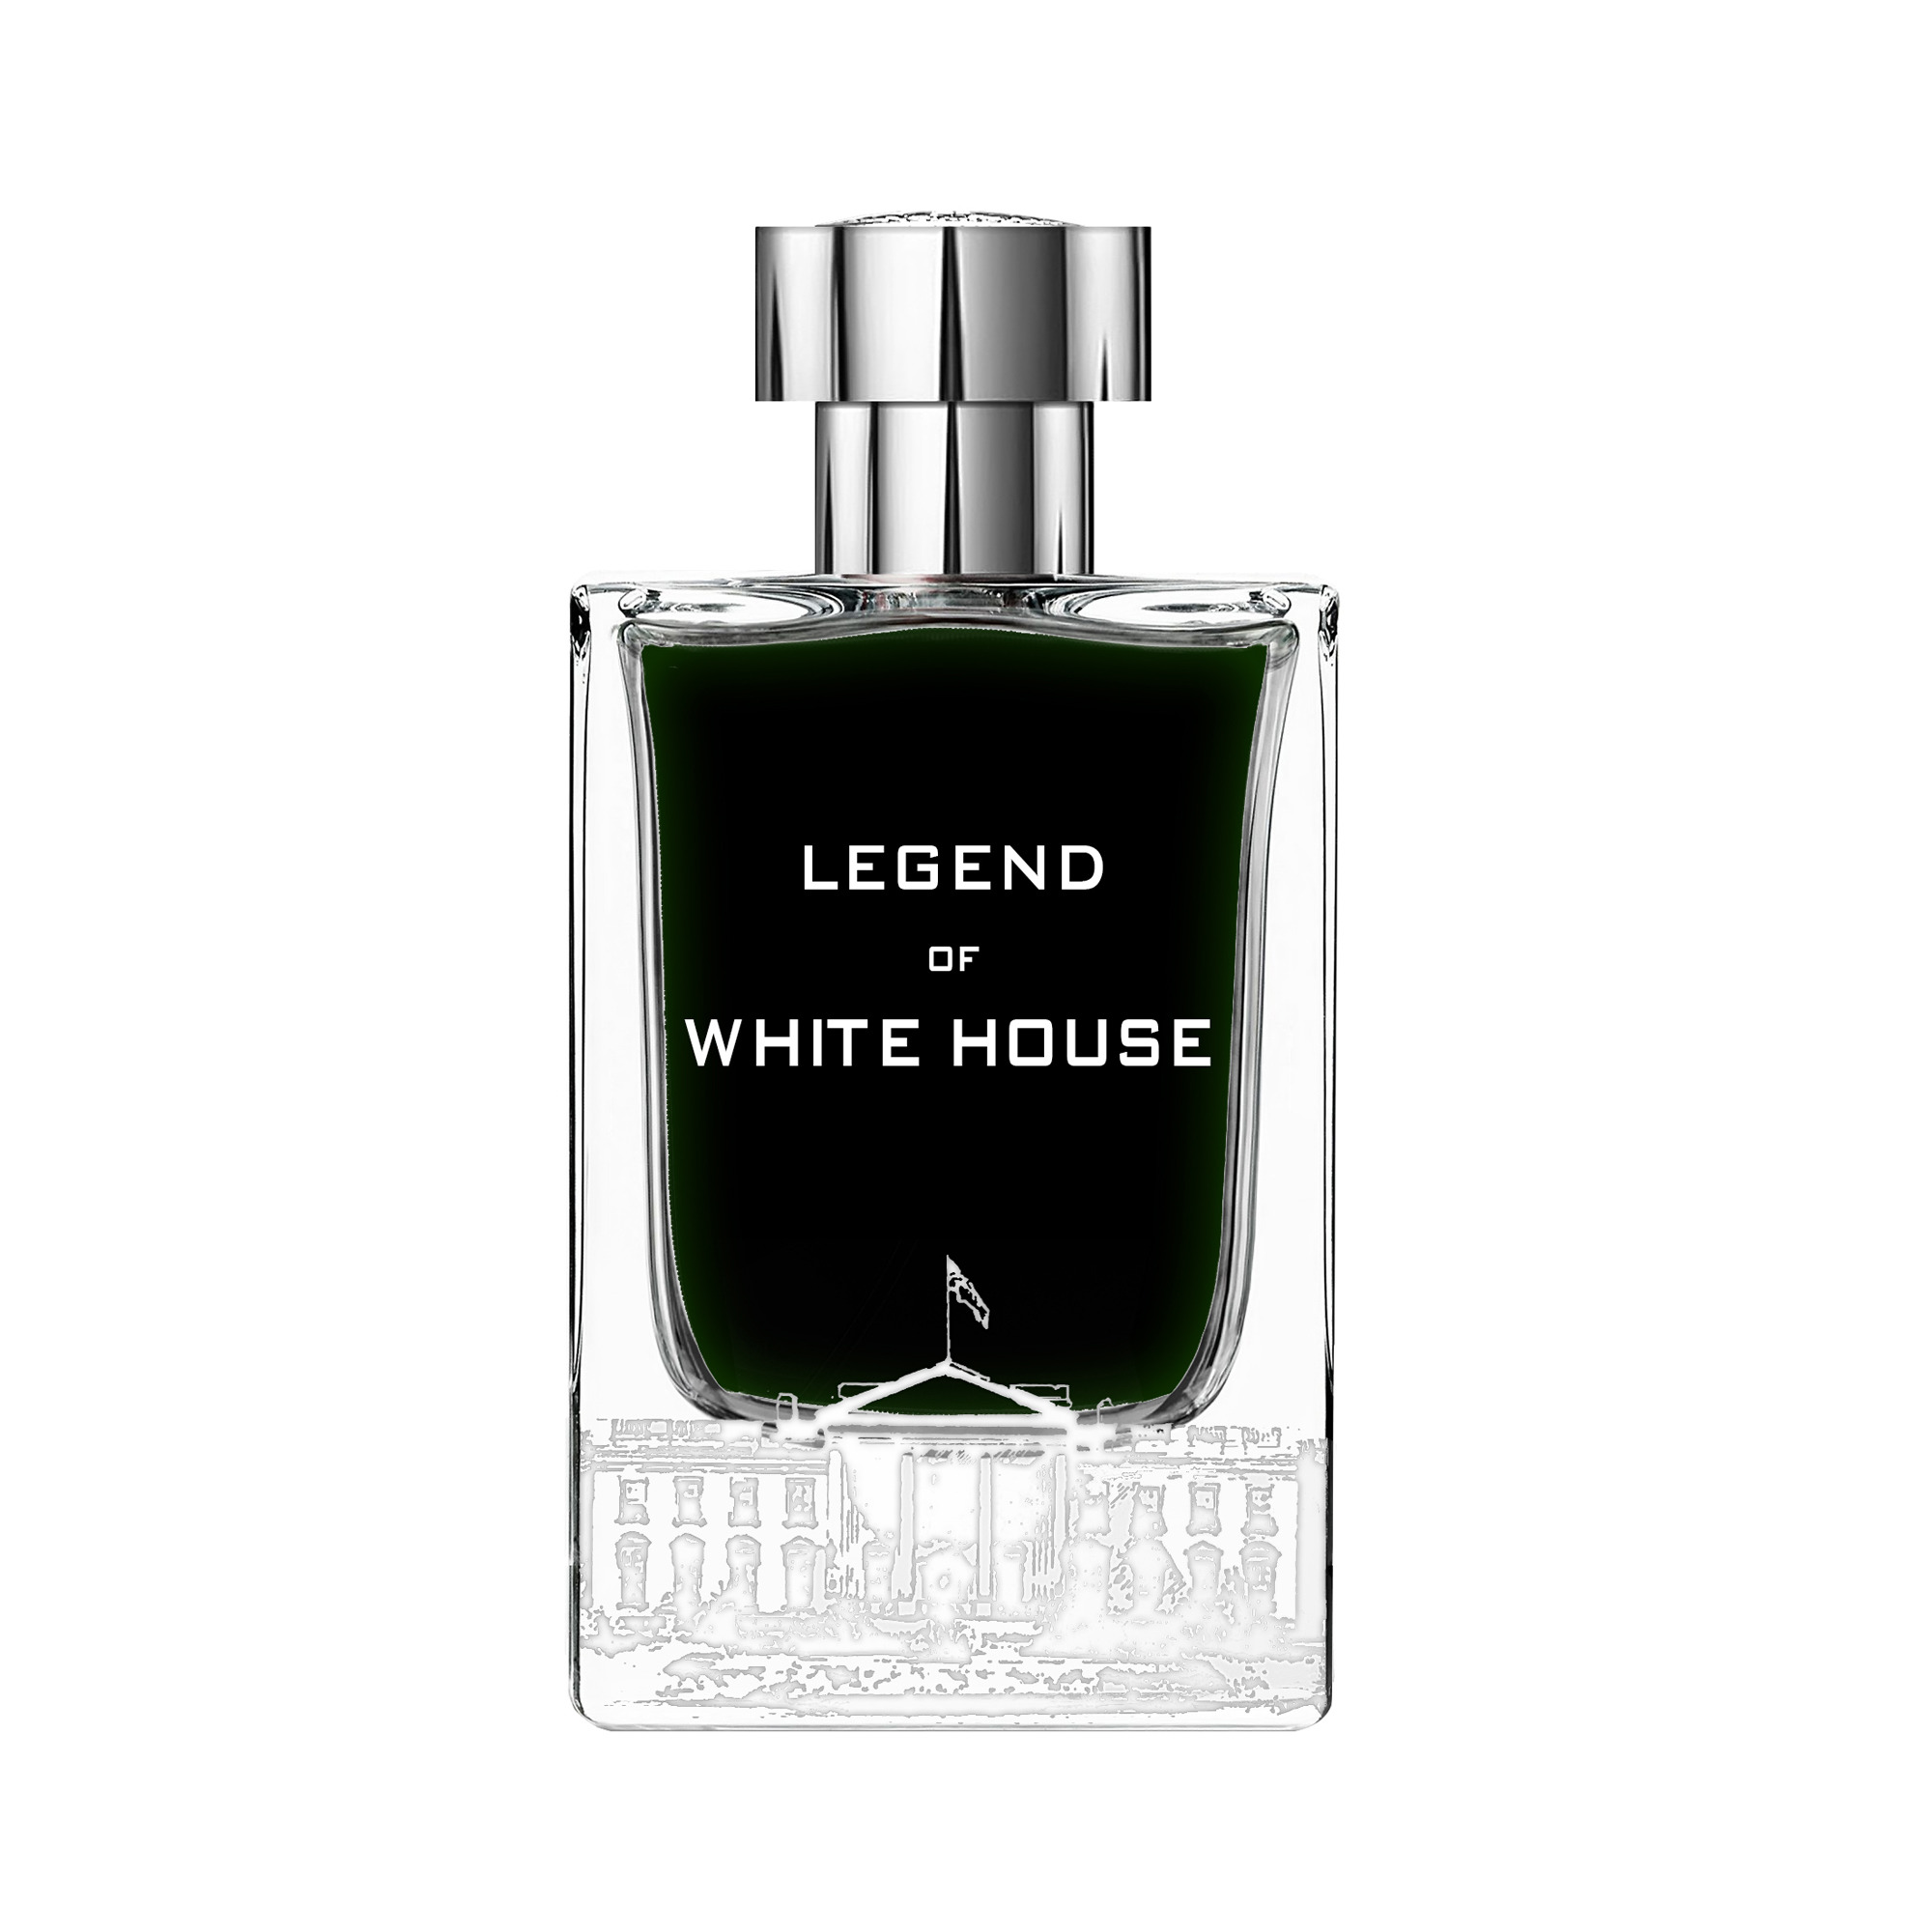 LEGEND OF WHITE HOUSE TOBACCO SWING